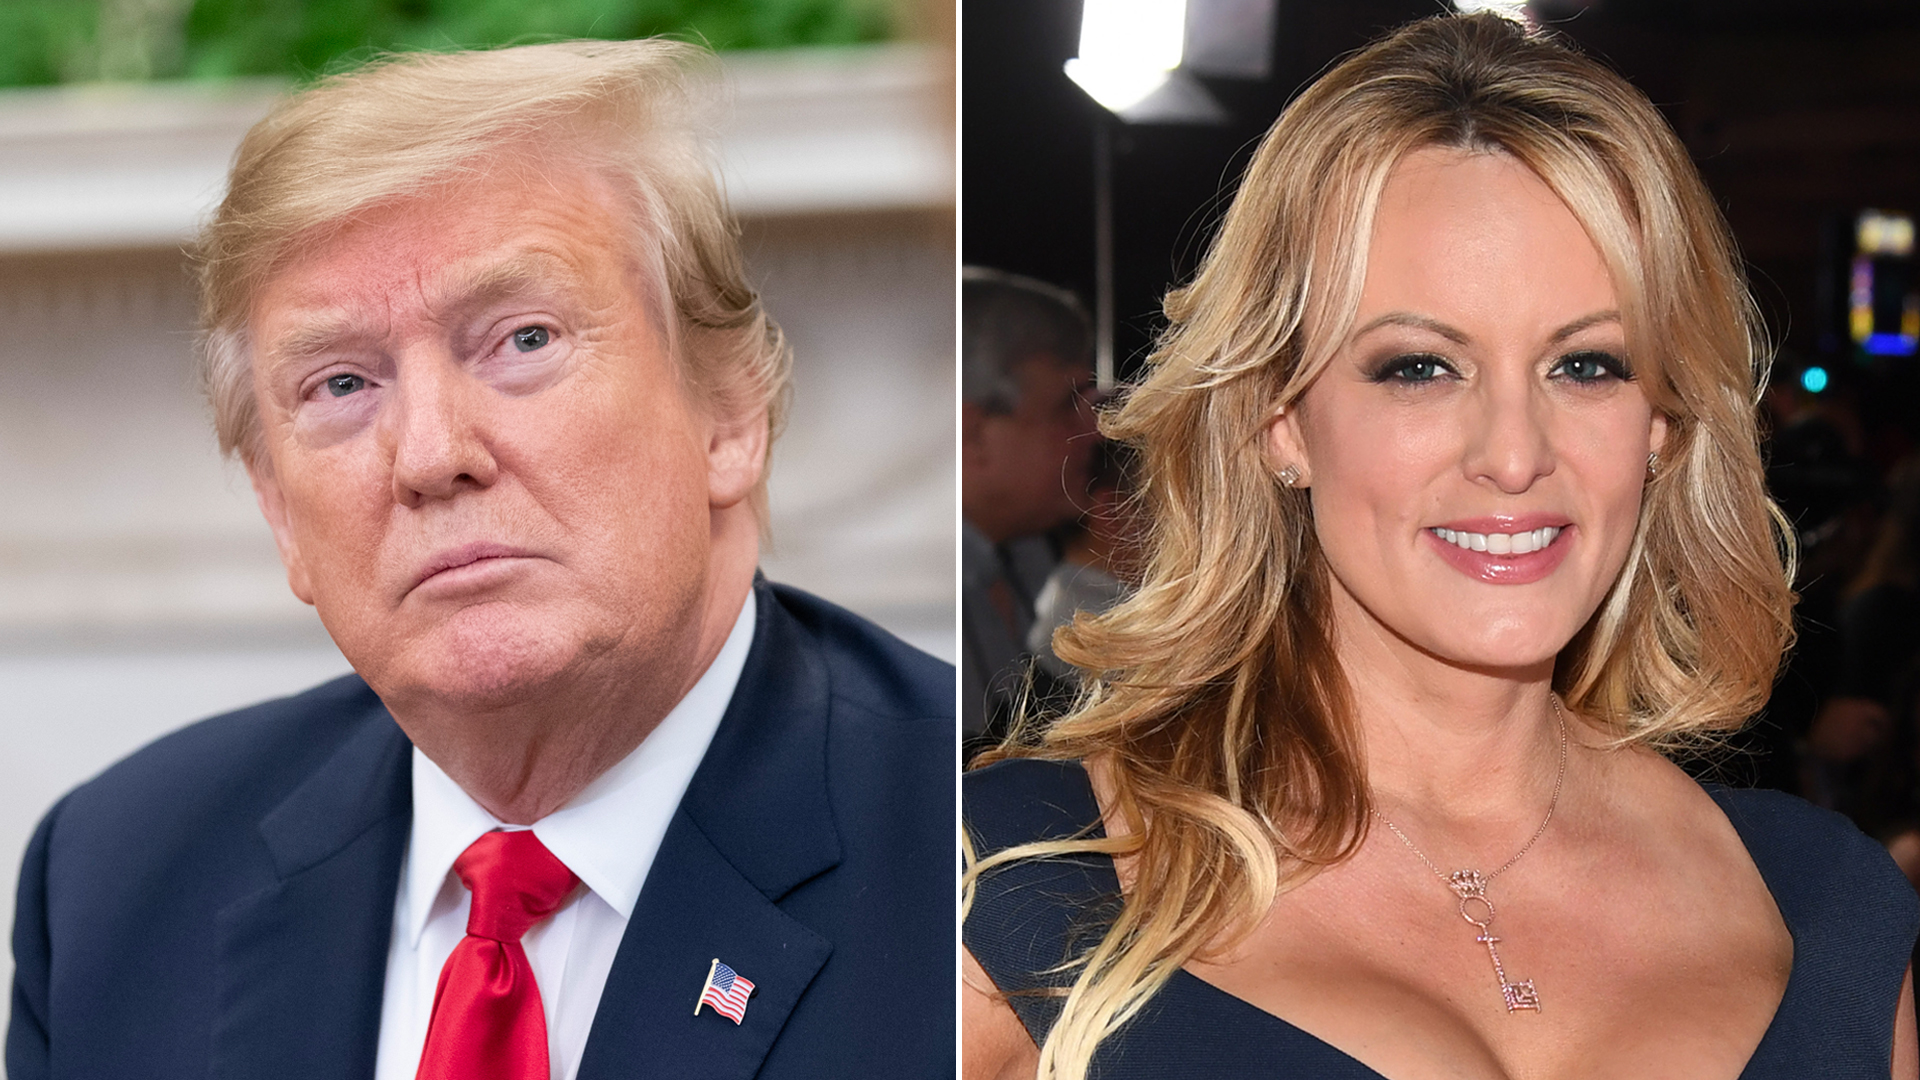 From left: President Donald Trump is seen during a meeting in the Oval Office on March 7, 2019, and director and actress Stormy Daniels attends the Adult Video News Awards in Las Vegas on Jan. 26, 2019. (Alex Edelman / Ethan Miller / Getty Images)